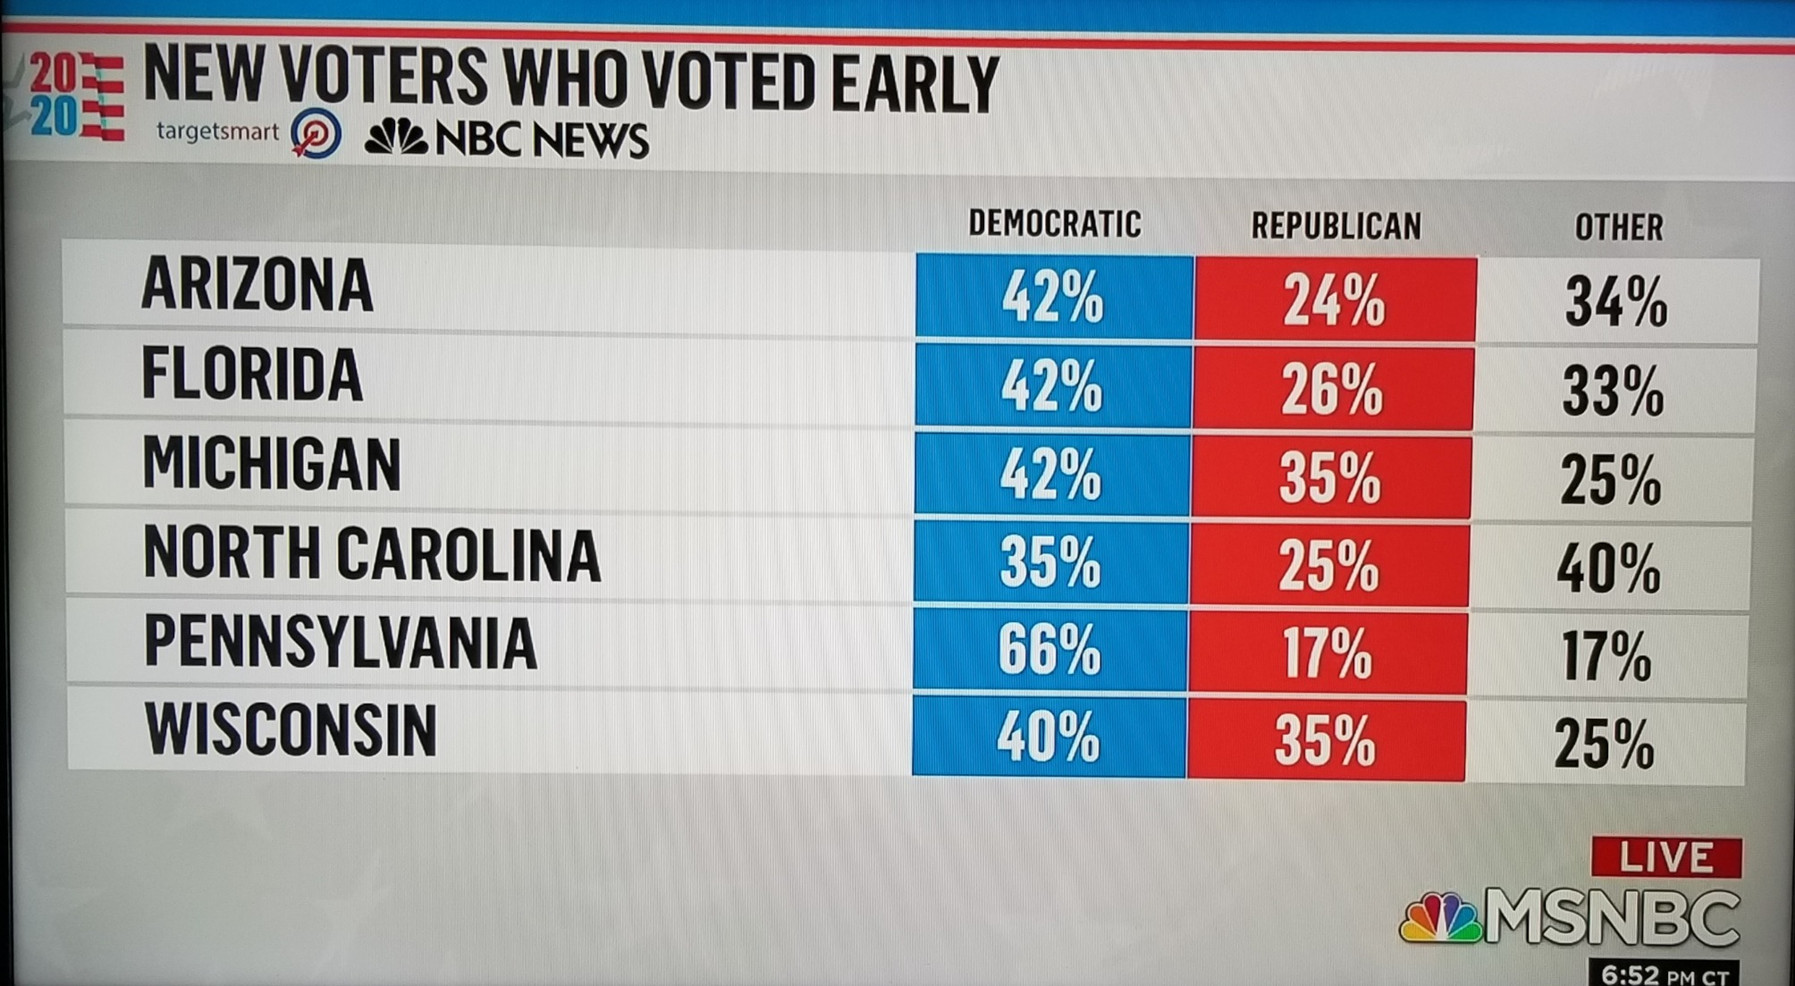 Early voting favors Dems